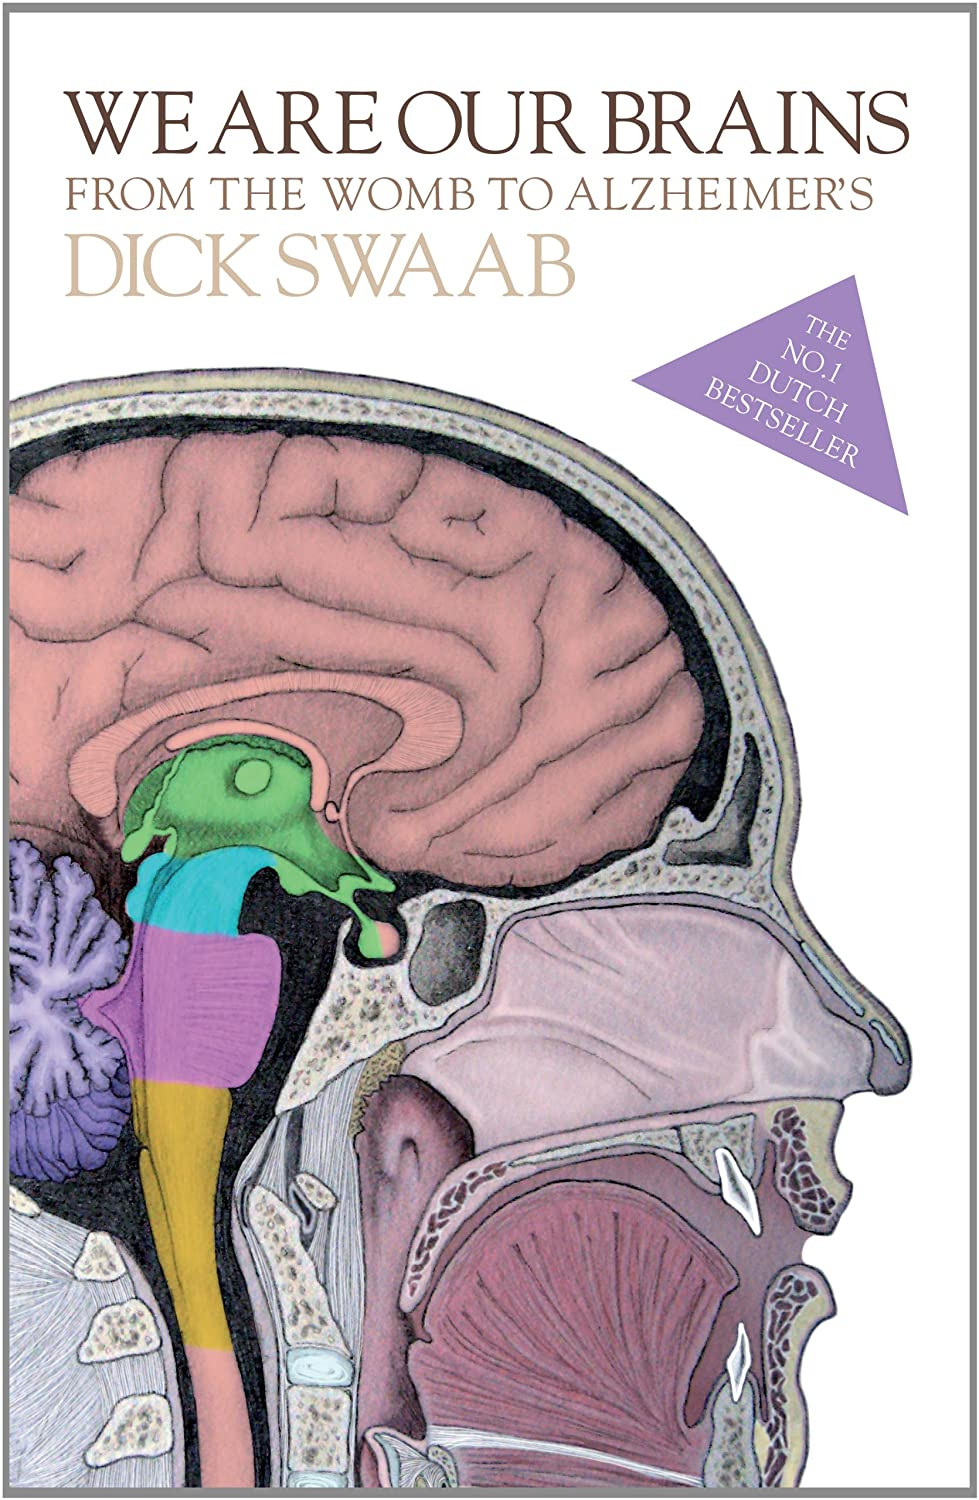 'We Are Our Brains' by Dick Swaab